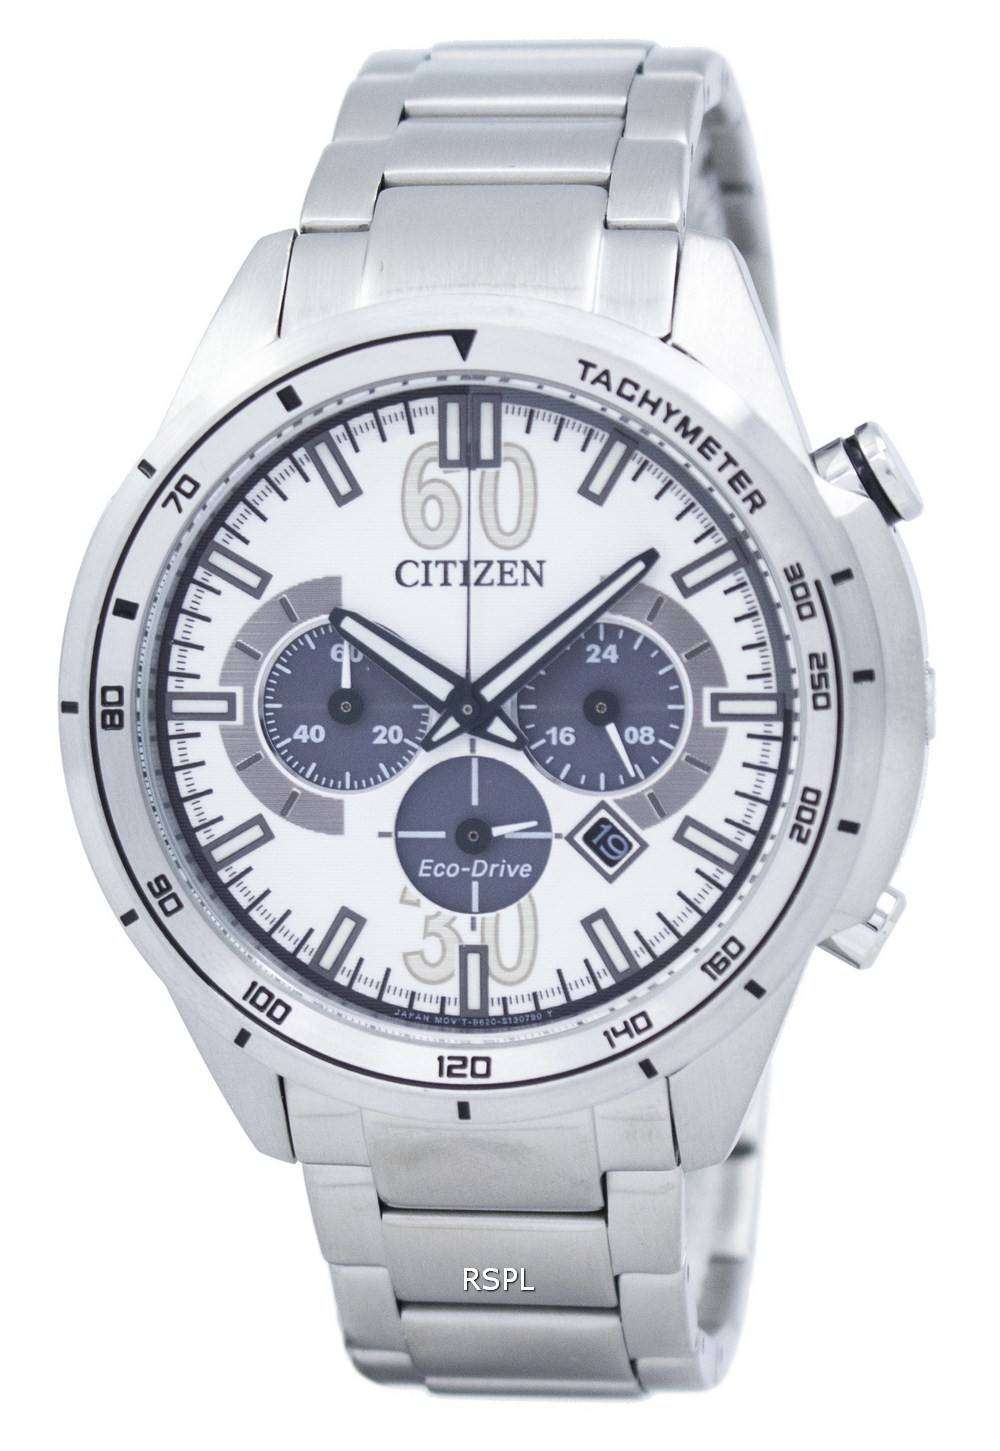 how to use tachymeter on citizen watch